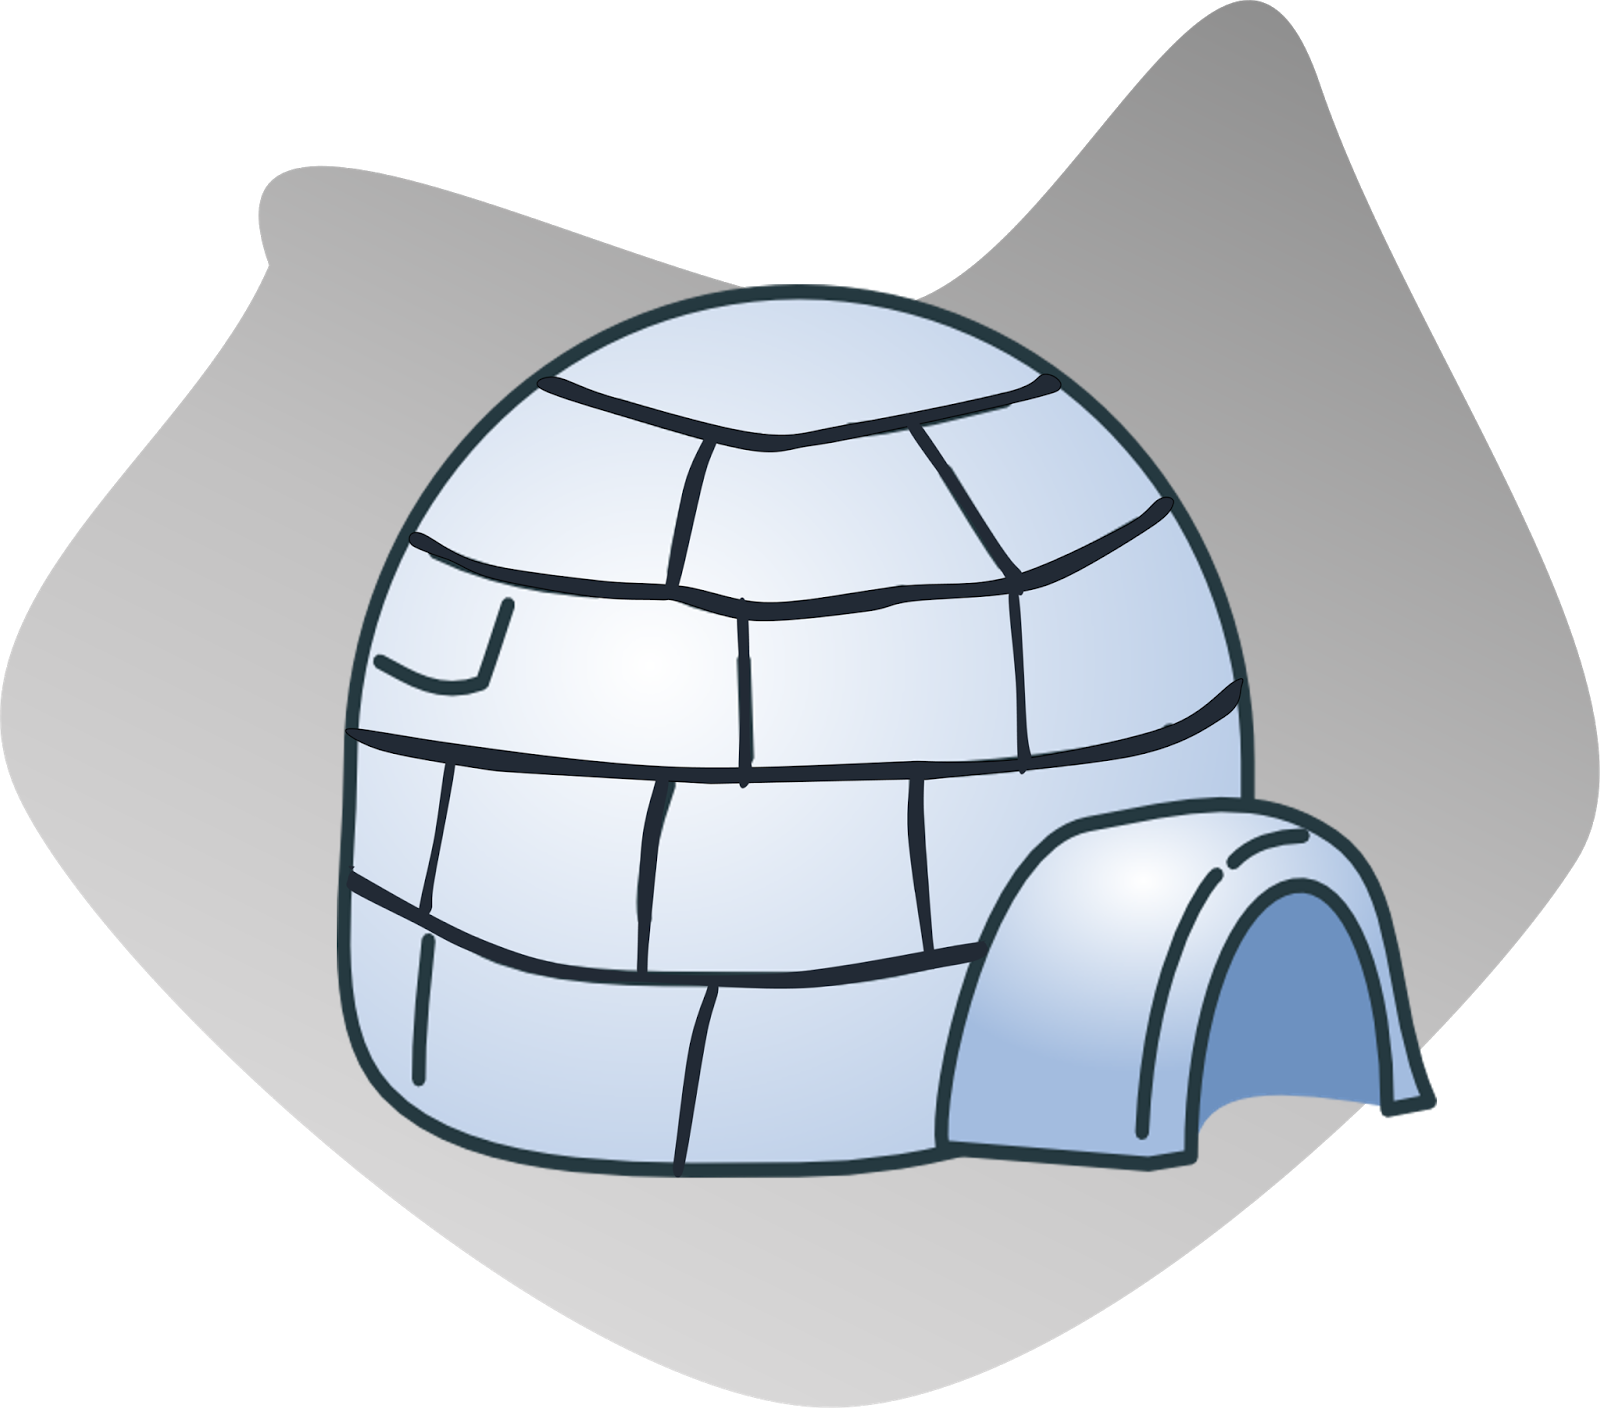 Igloo house cliparts clipart club